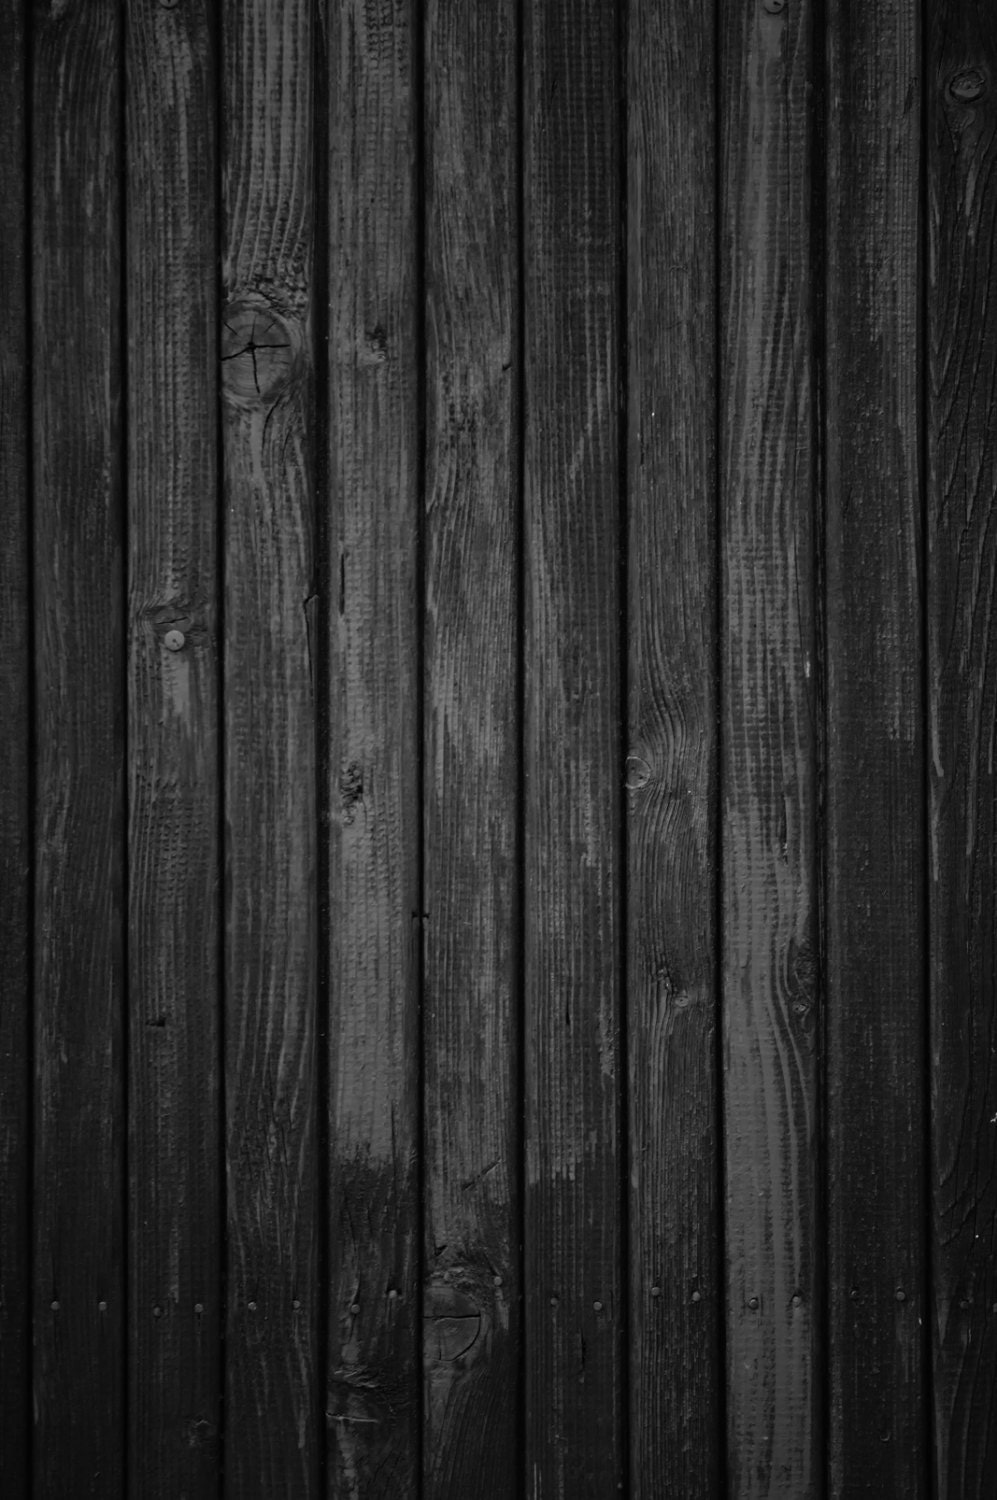 Black Wood Planks ~ Black wood backdrop weathered dark planks floor printed